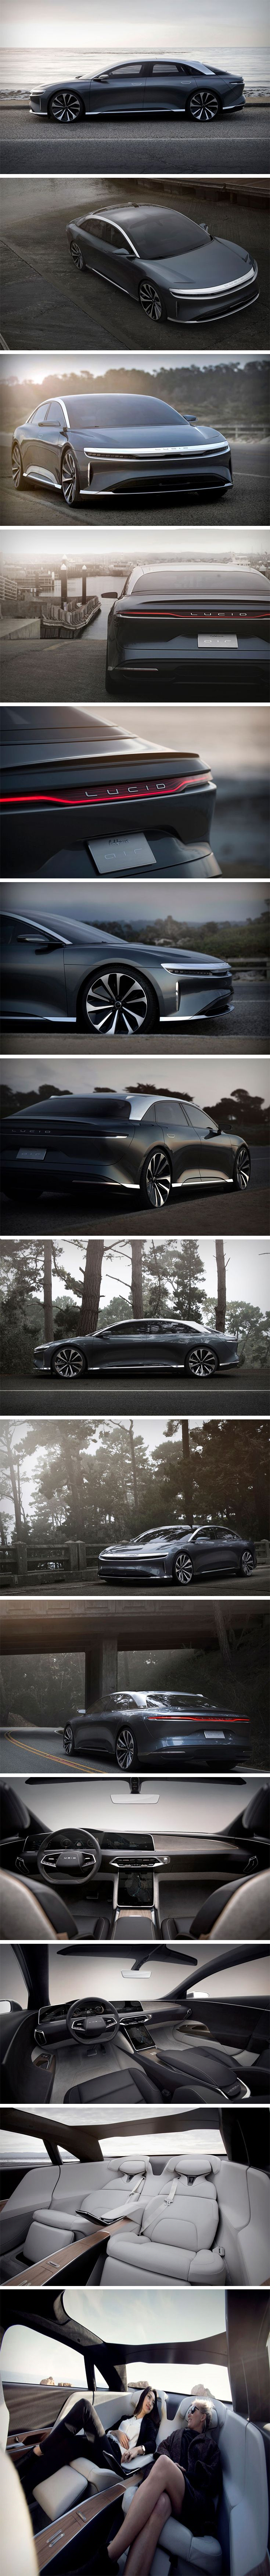 Capable of 1,000 horsepower and boasting a range of 400 miles, the Lucid Air is guaranteed to give Tesla and the other leading electrical car brands a serious headache. When it comes to the future enhancements of the Lucid Air, they seem to have it covered. Lucid vehicles will be delivered autonomous-ready with a comprehensive sensor suite able to scale to complete autonomy through ongoing software upgrades.